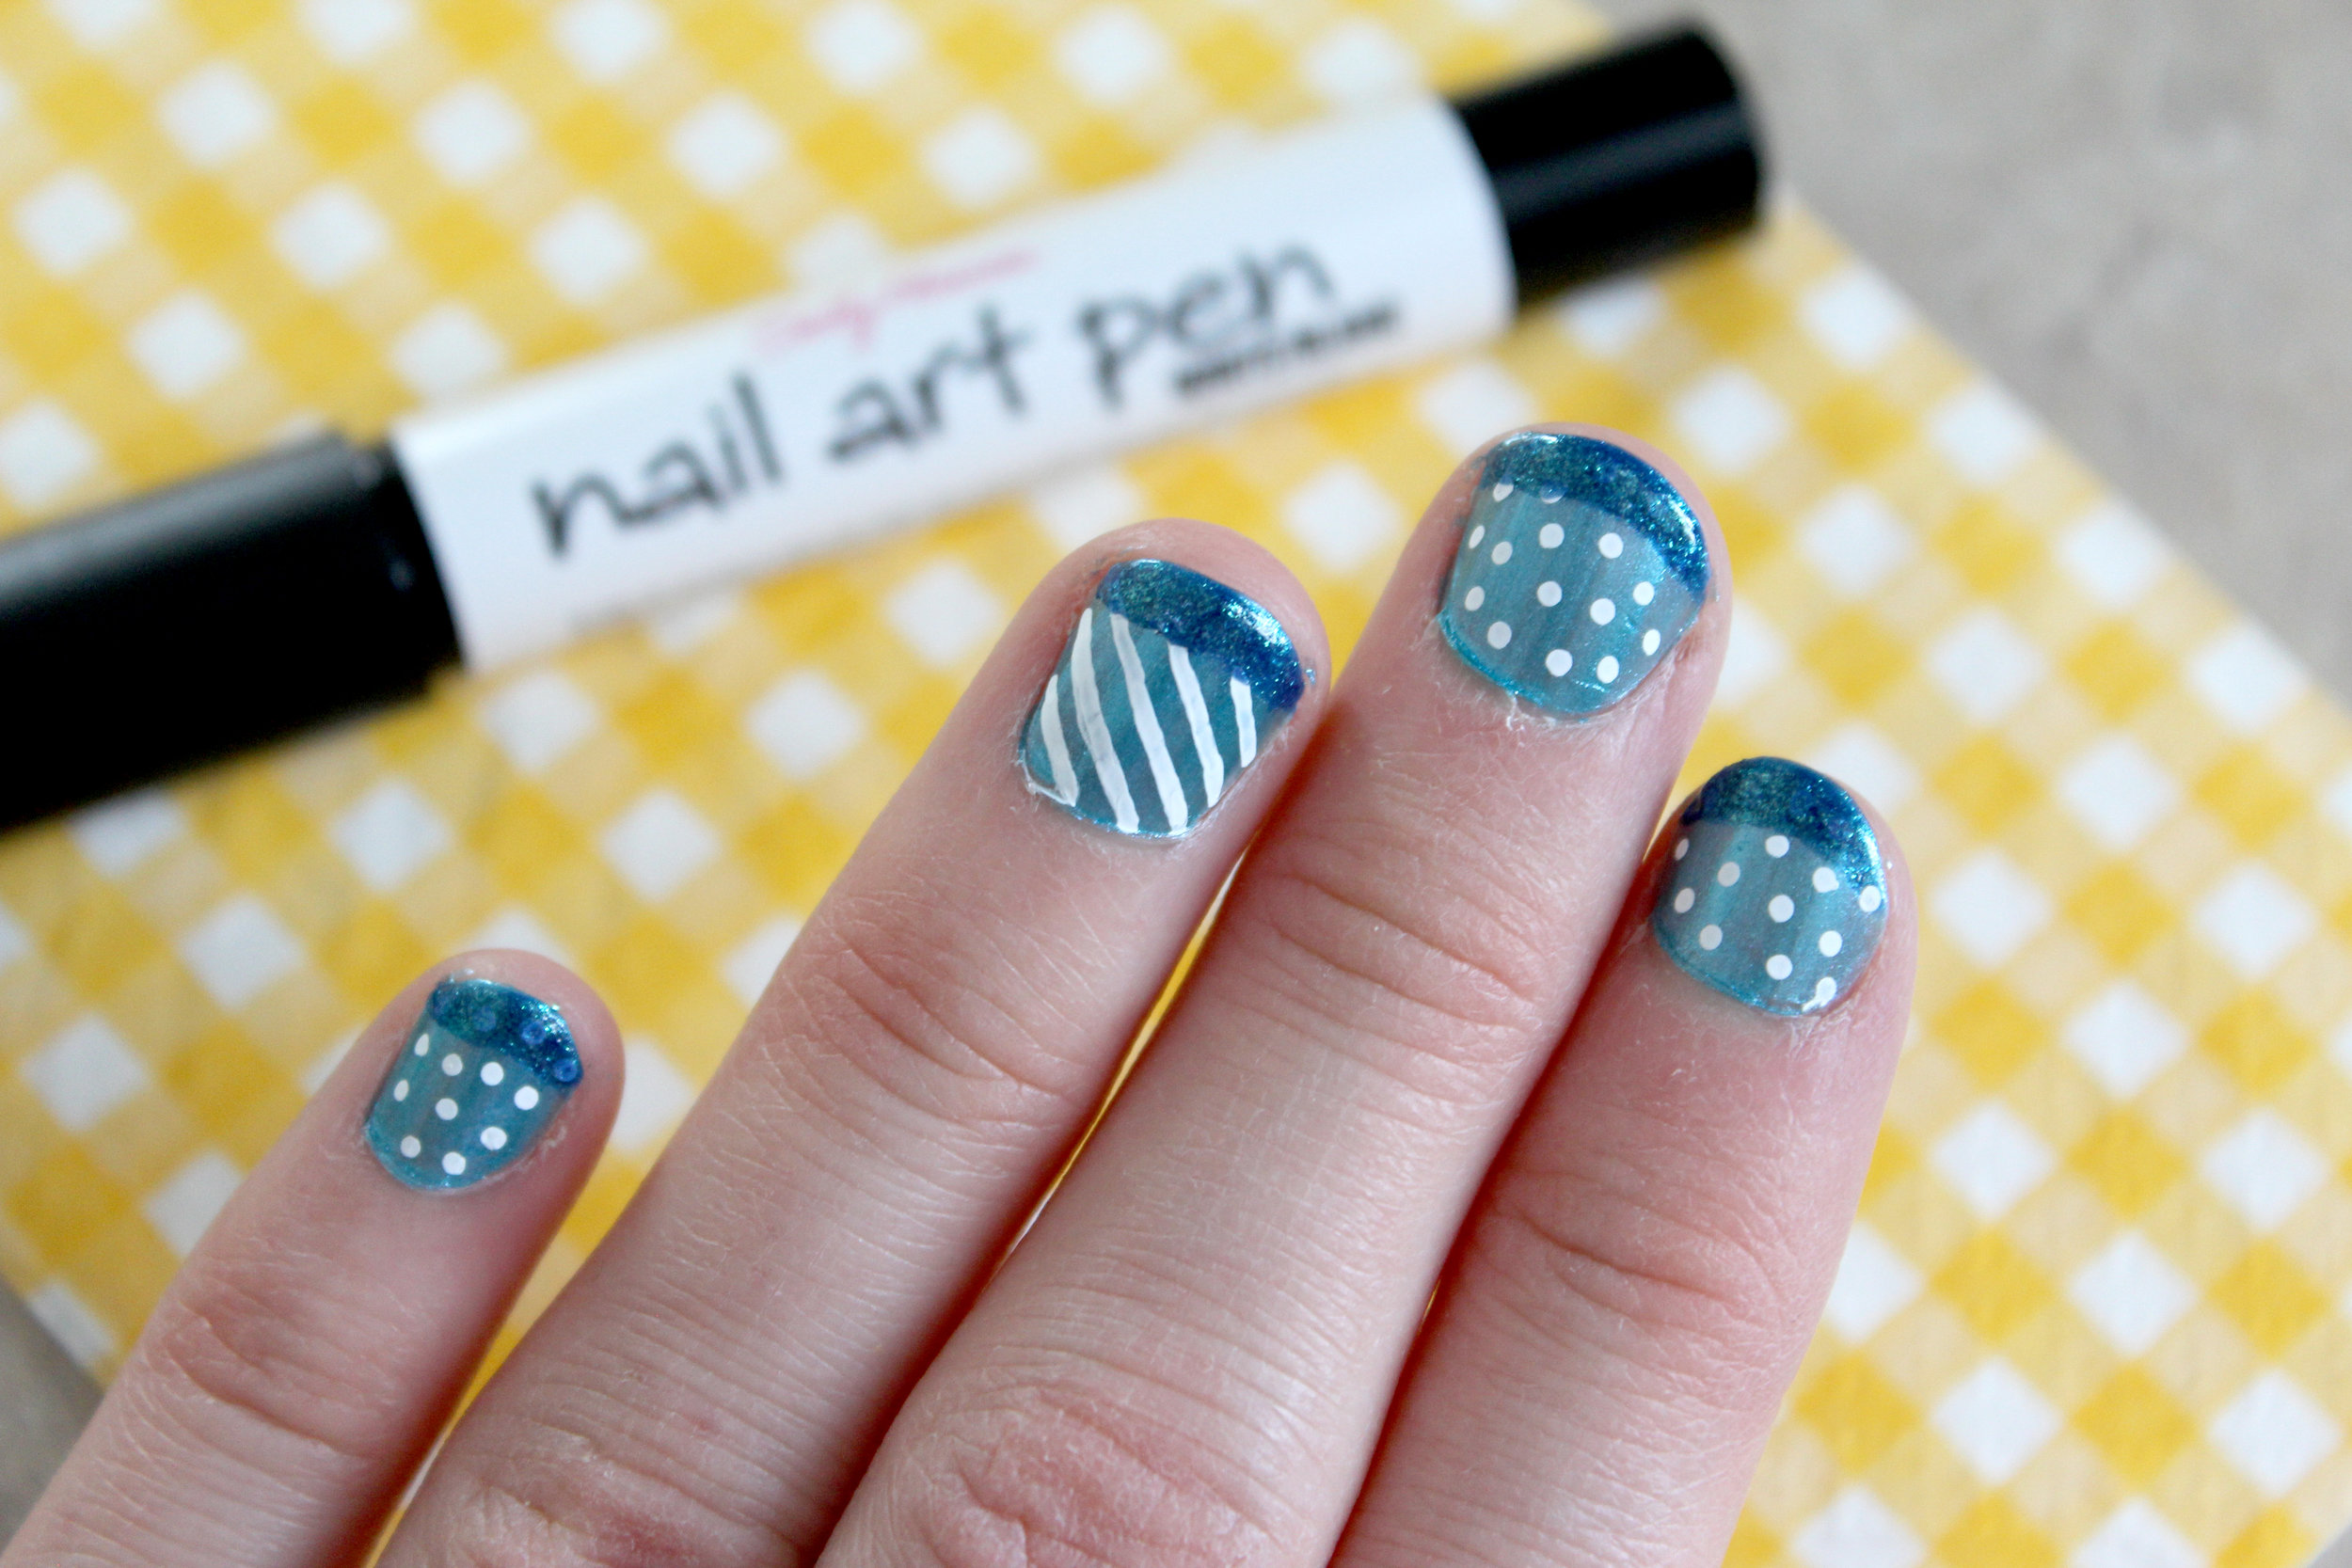 blue and white nail art stripes and dots 1.jpg